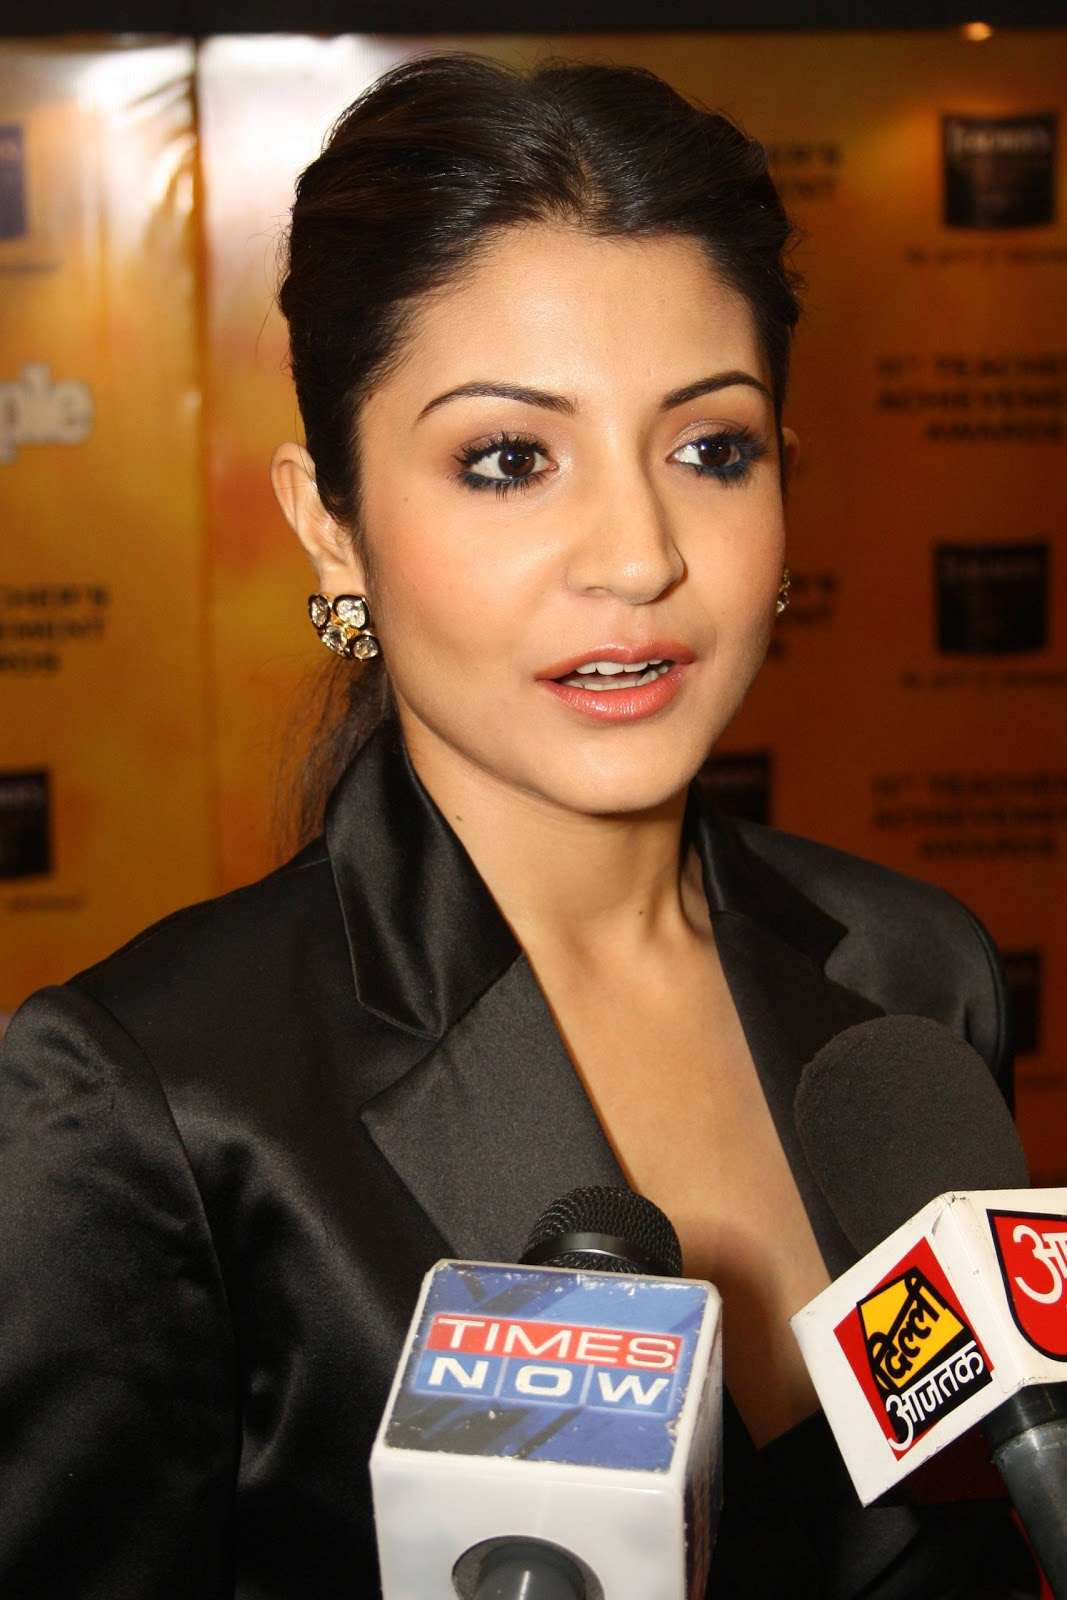 'NH 10' actress Anushka Sharma HD Images & Wallpapers